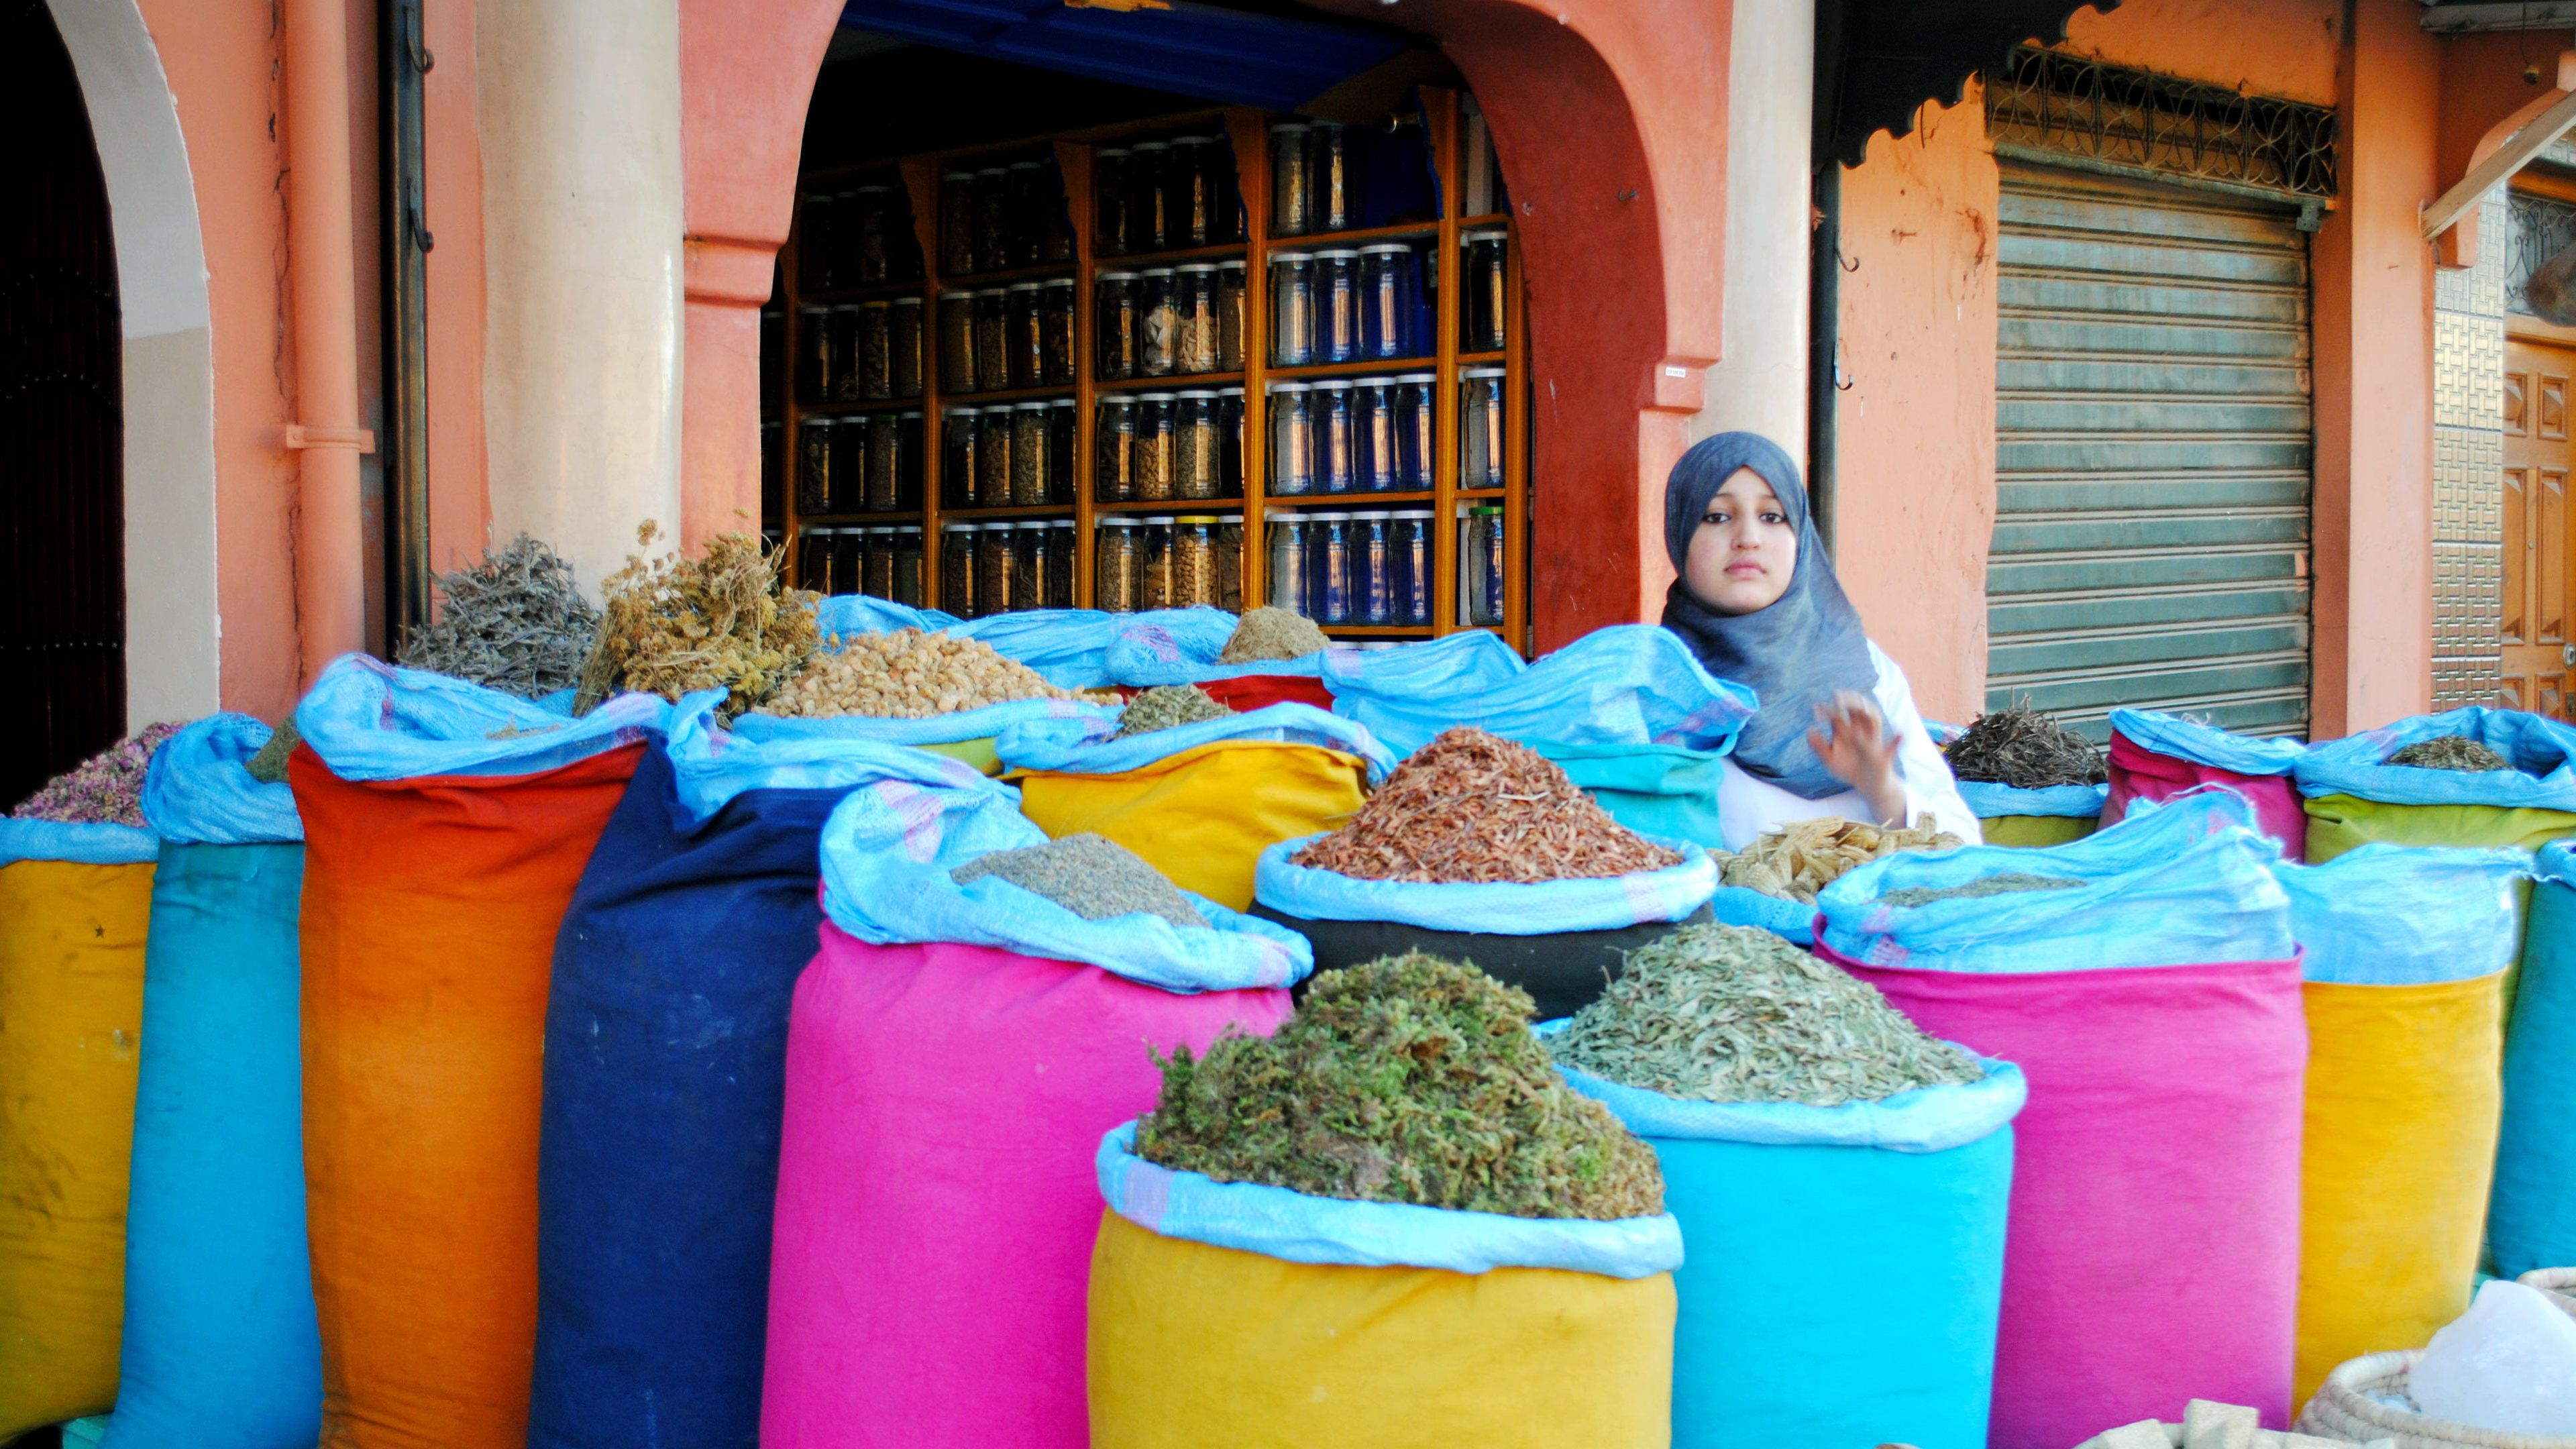 Colorful bags of herbs and spices for sale at a market in Marrakech